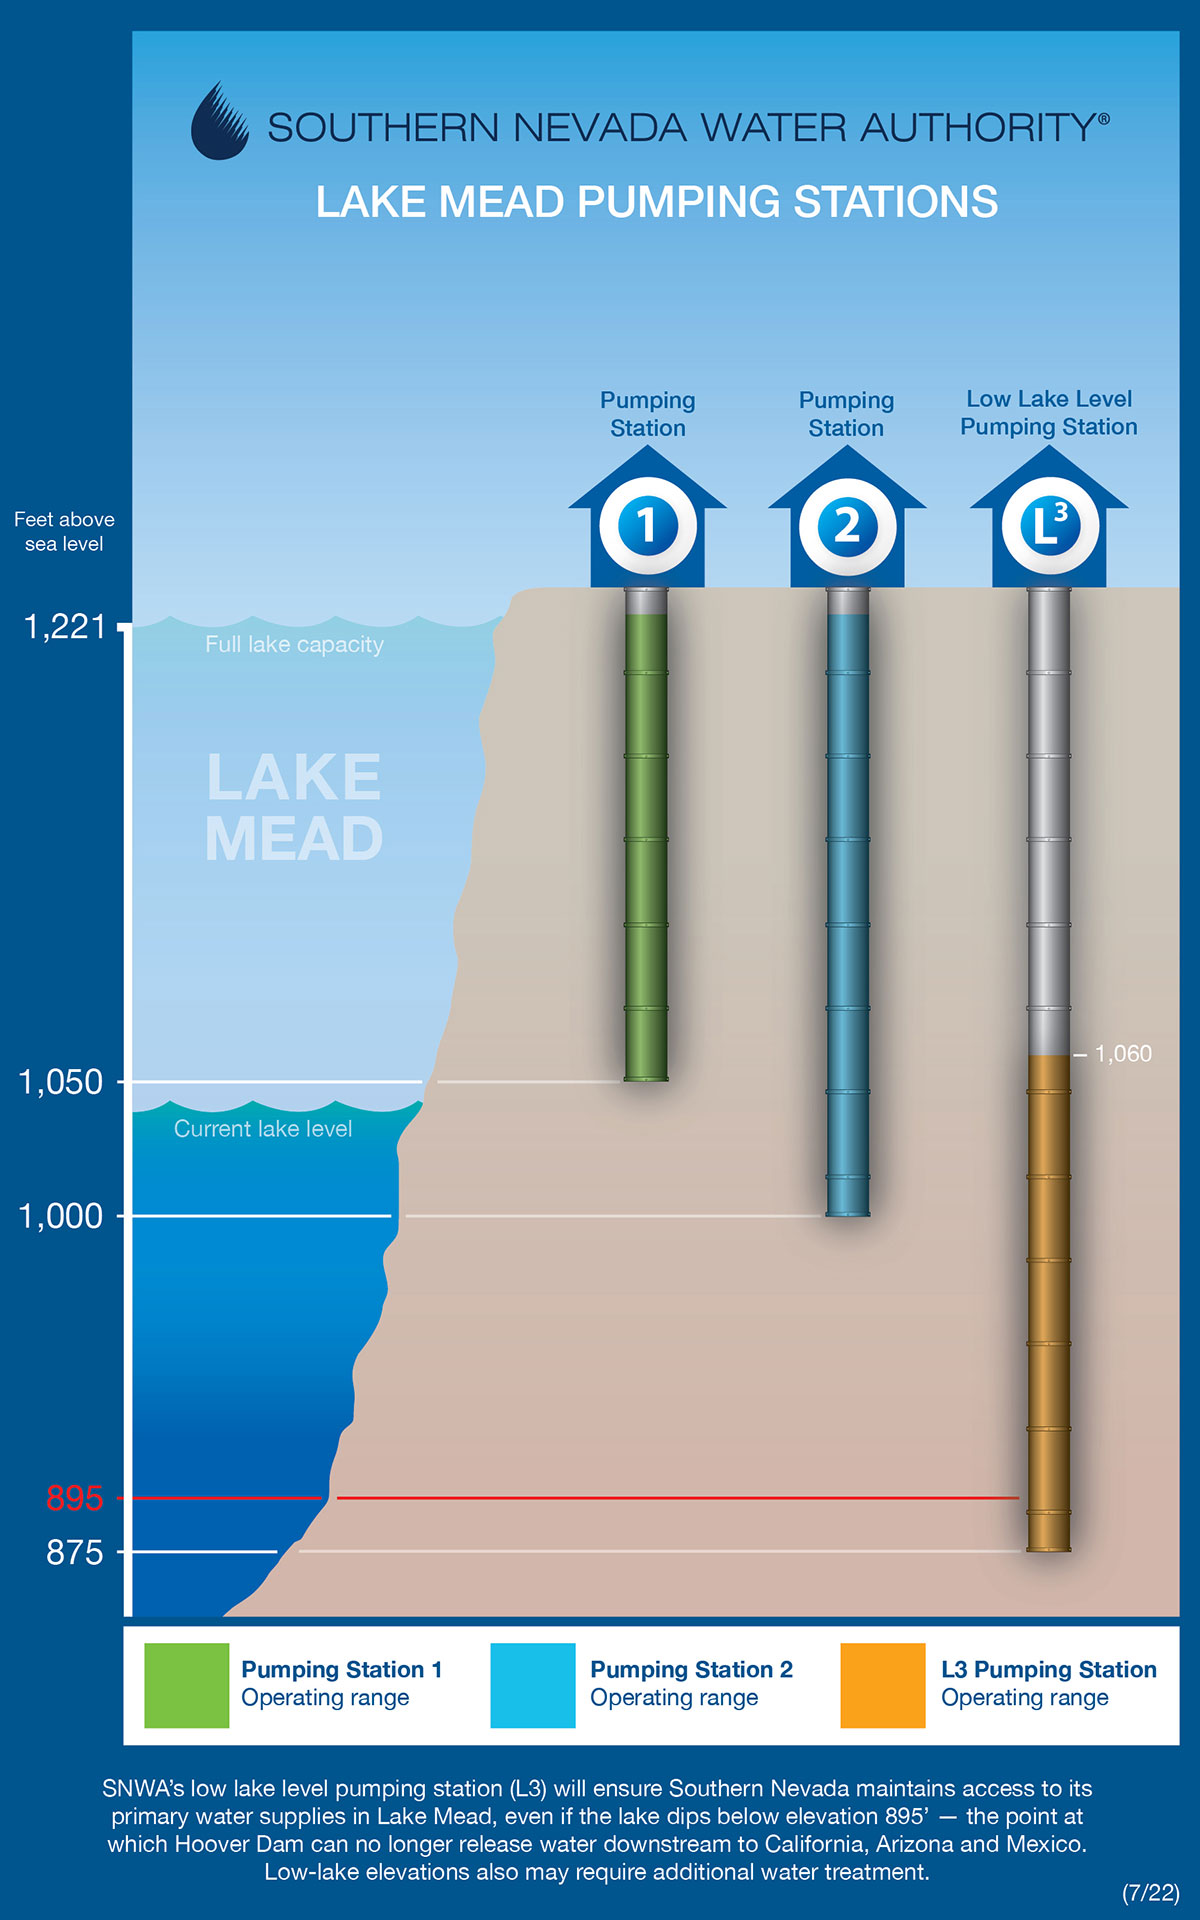 This infographic, titled Southern Nevada Water Authority Lake Mead Pumping Stations, is described below.